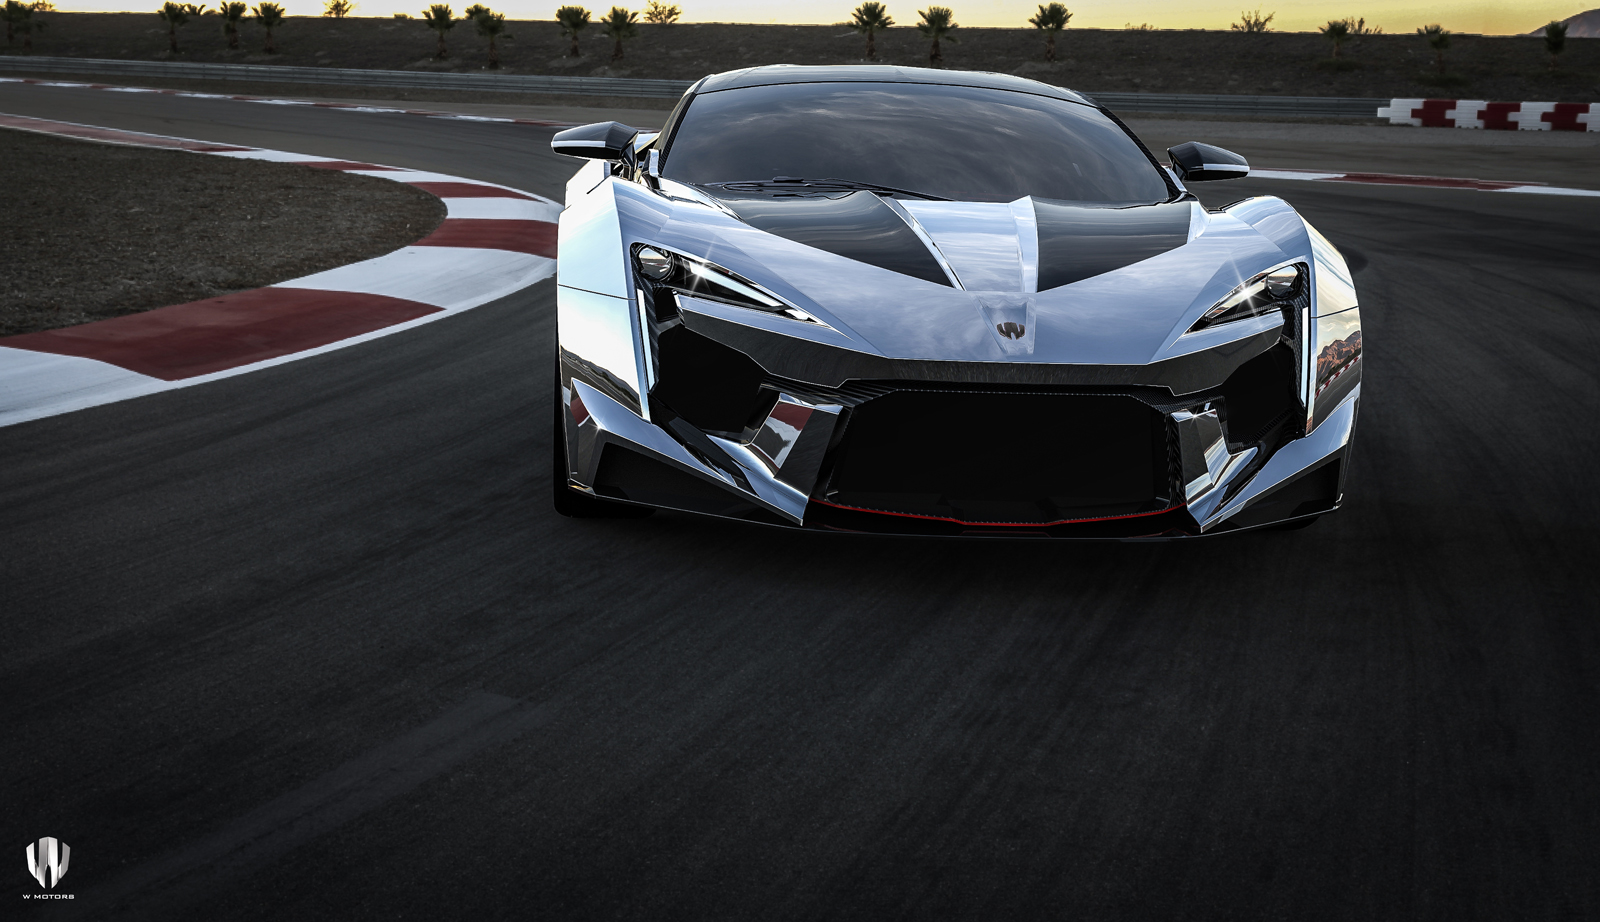 W Motors Fenyr Supersport To Mark Us Debut In Monterey